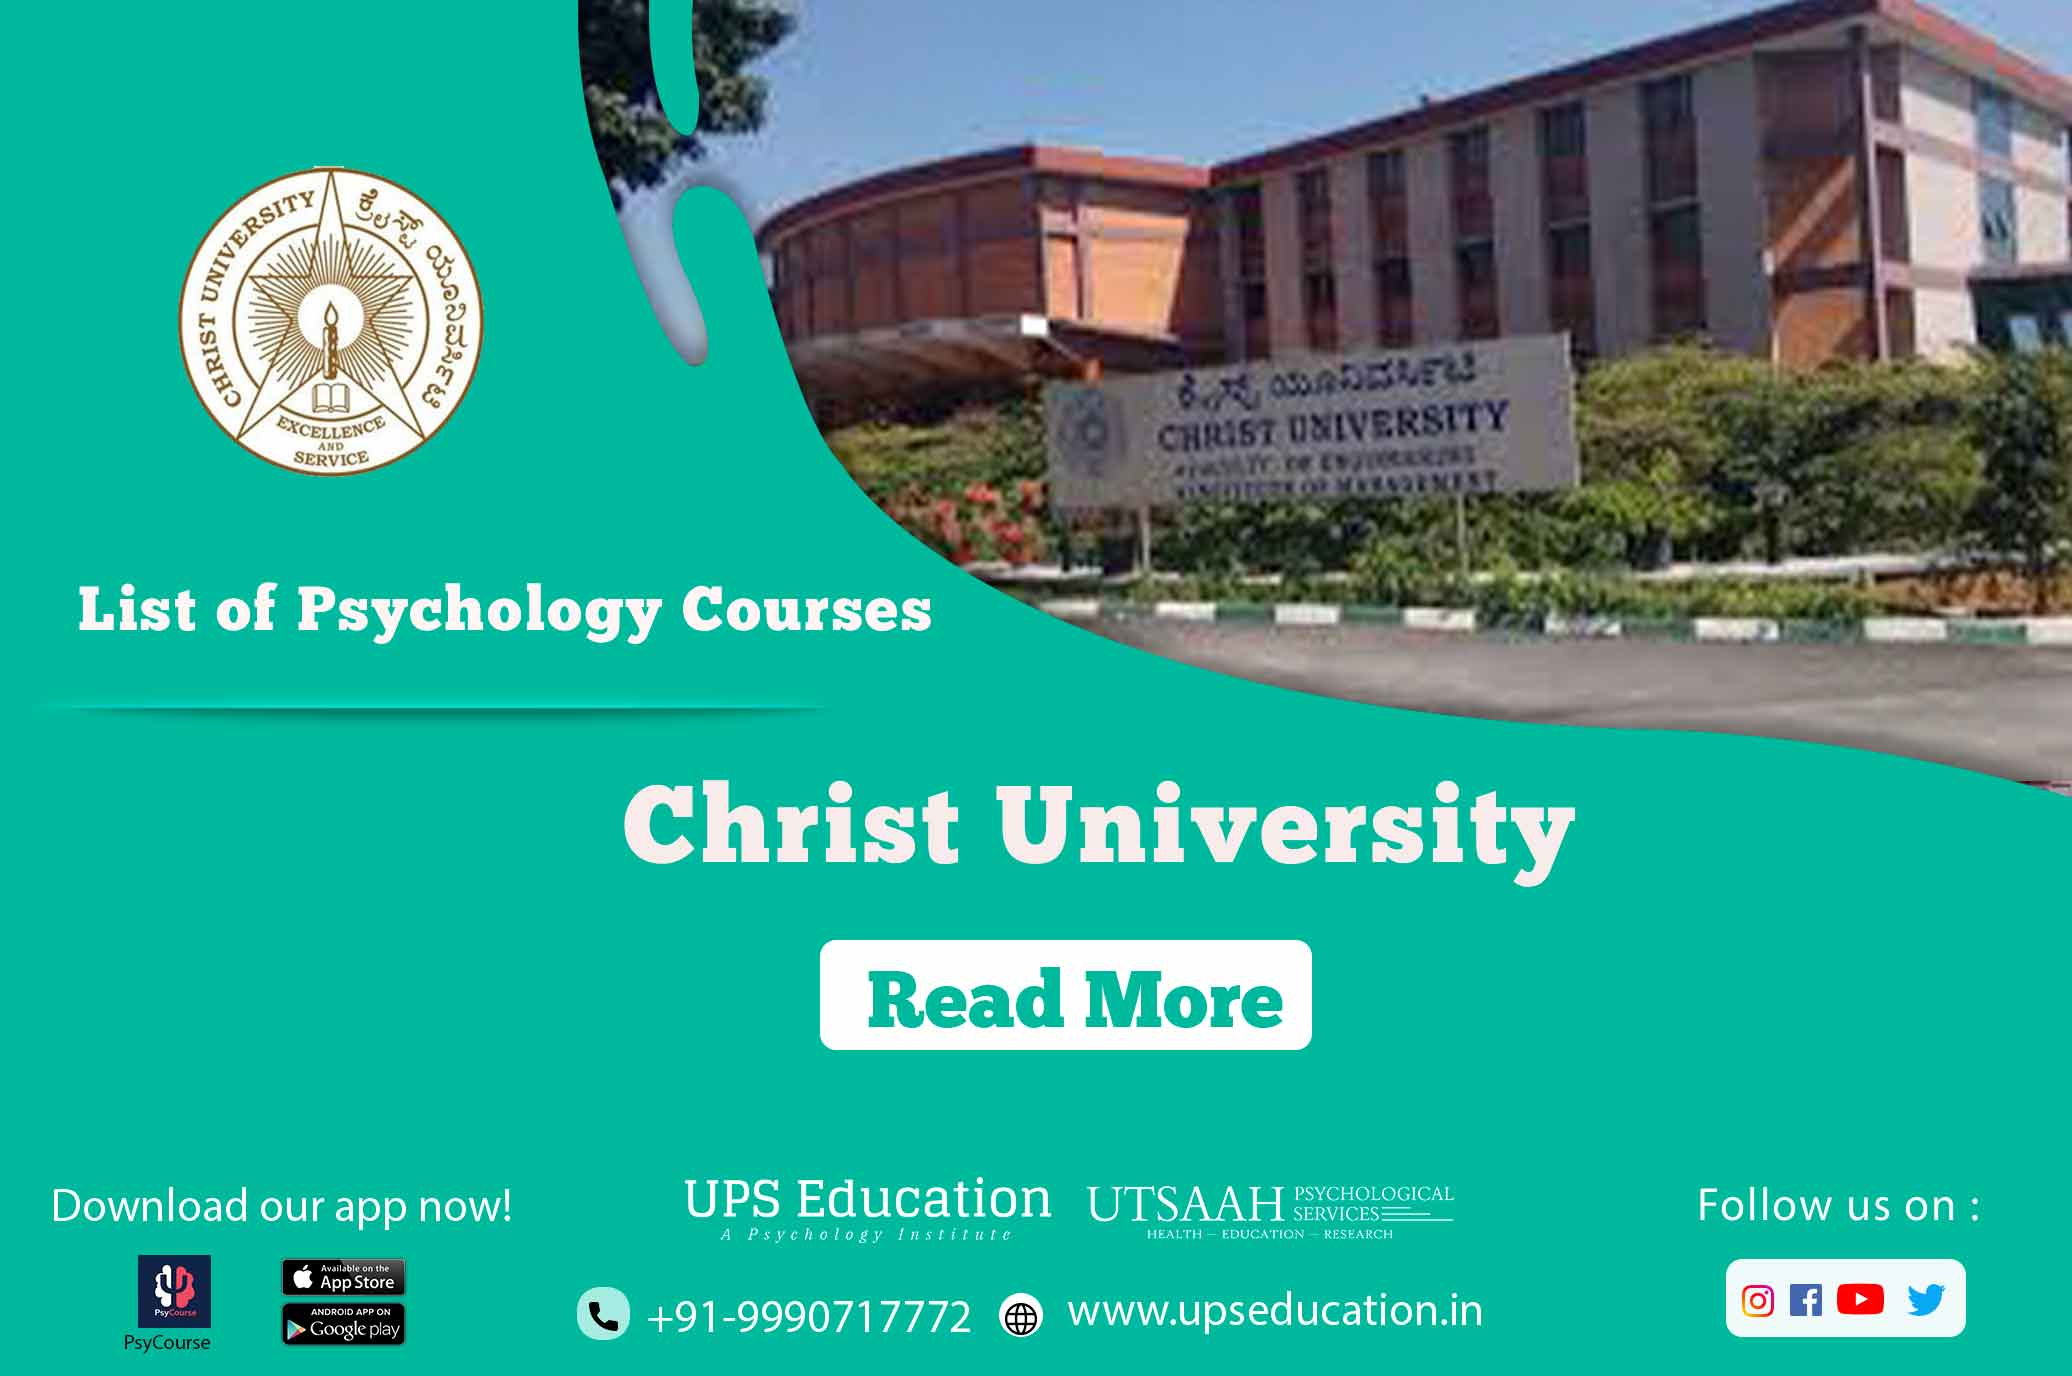 Christ university list of psychology courses